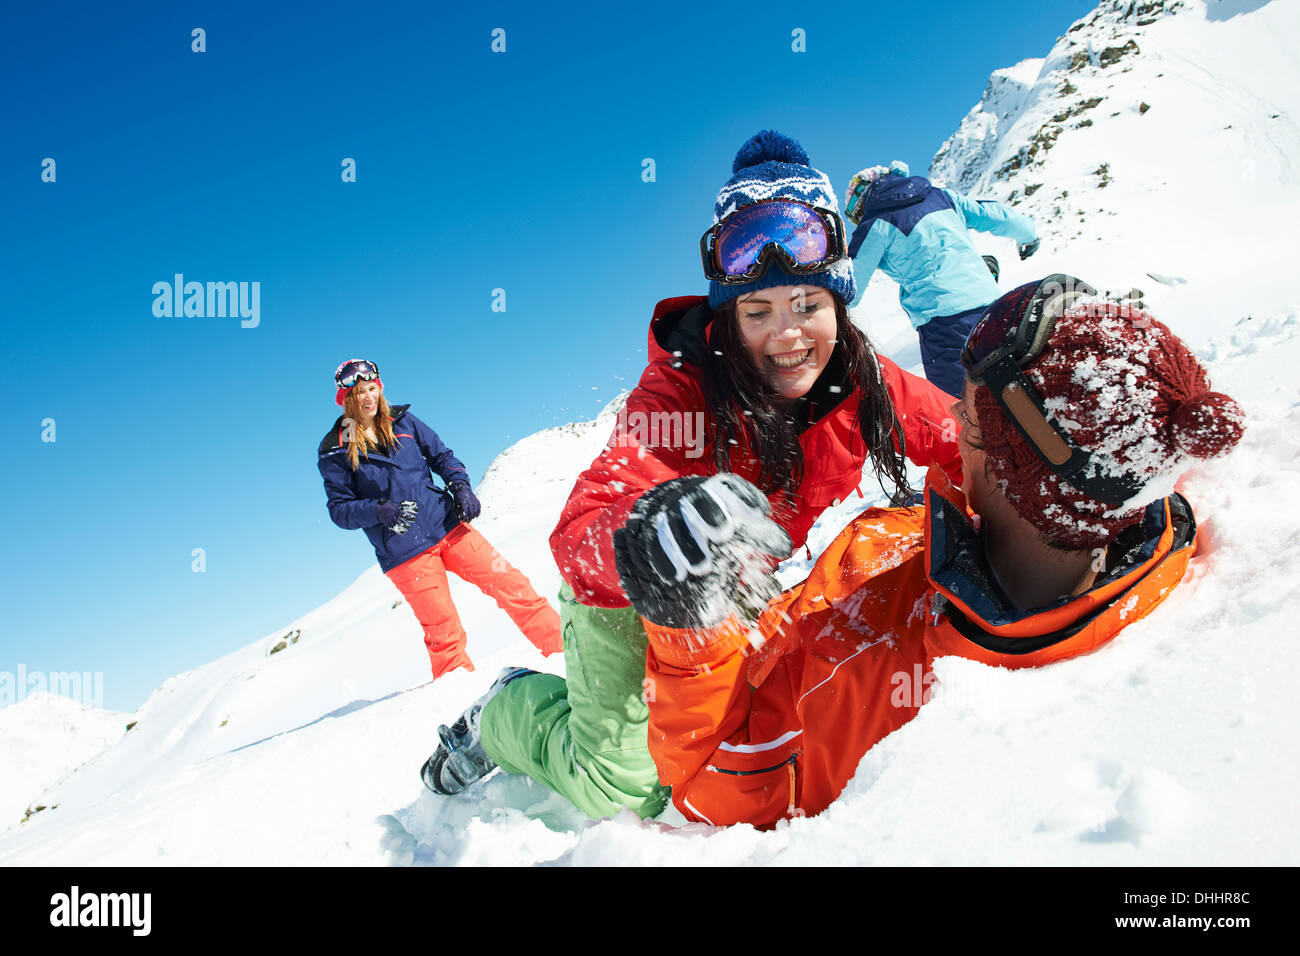 Friends play fighting in snow, Kuhtai, Austria - Stock Image